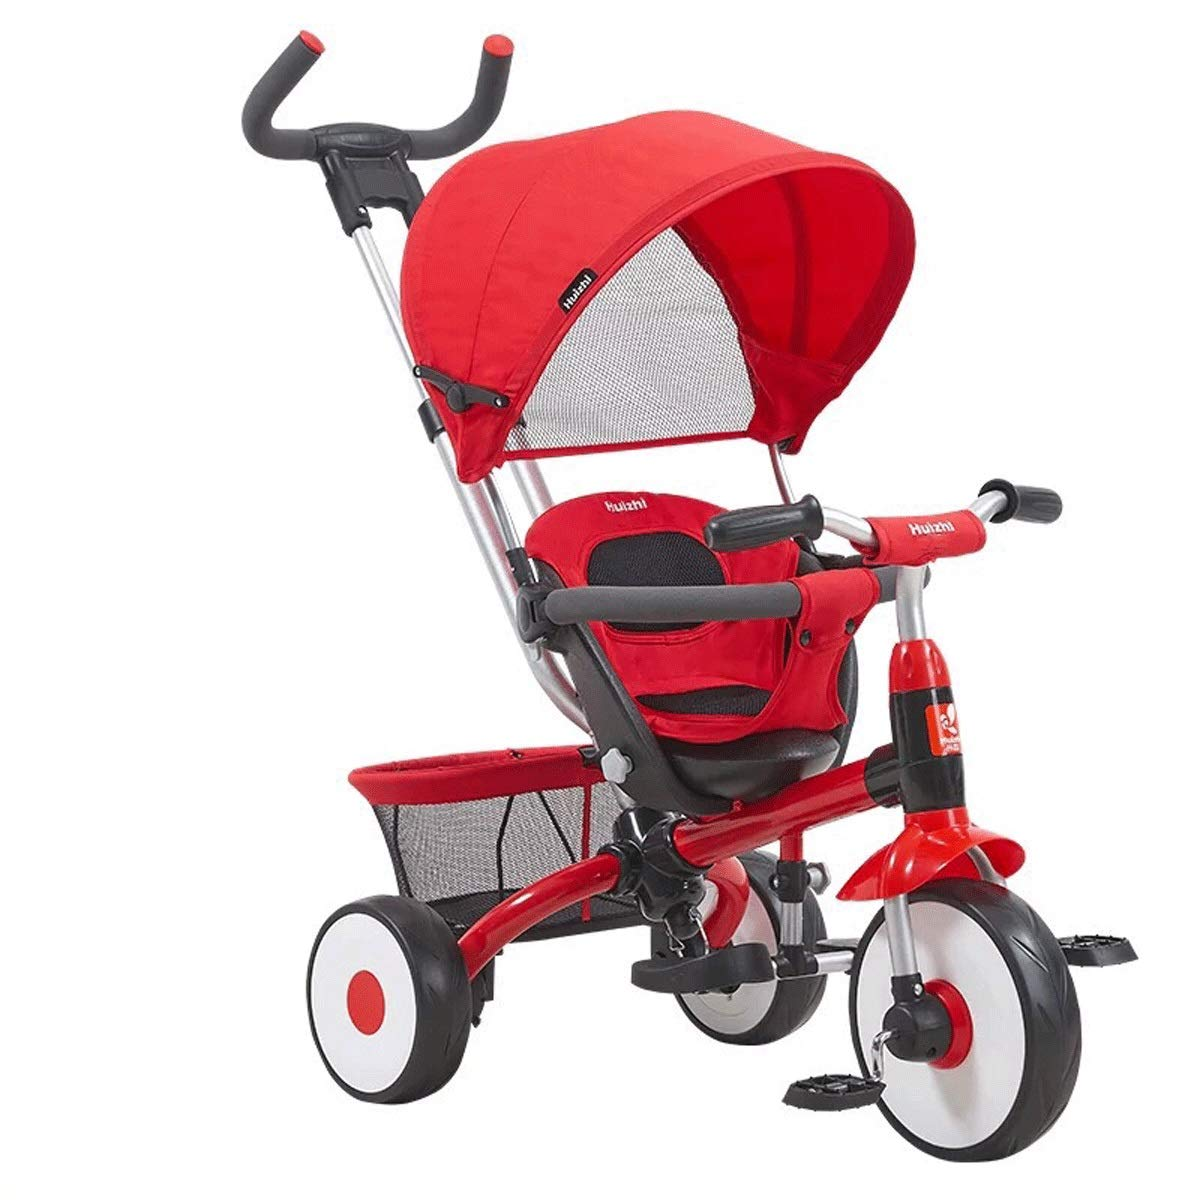 Baianju Multi-Function Children's Tricycle Bicycle Baby Stroller Children's Trolley